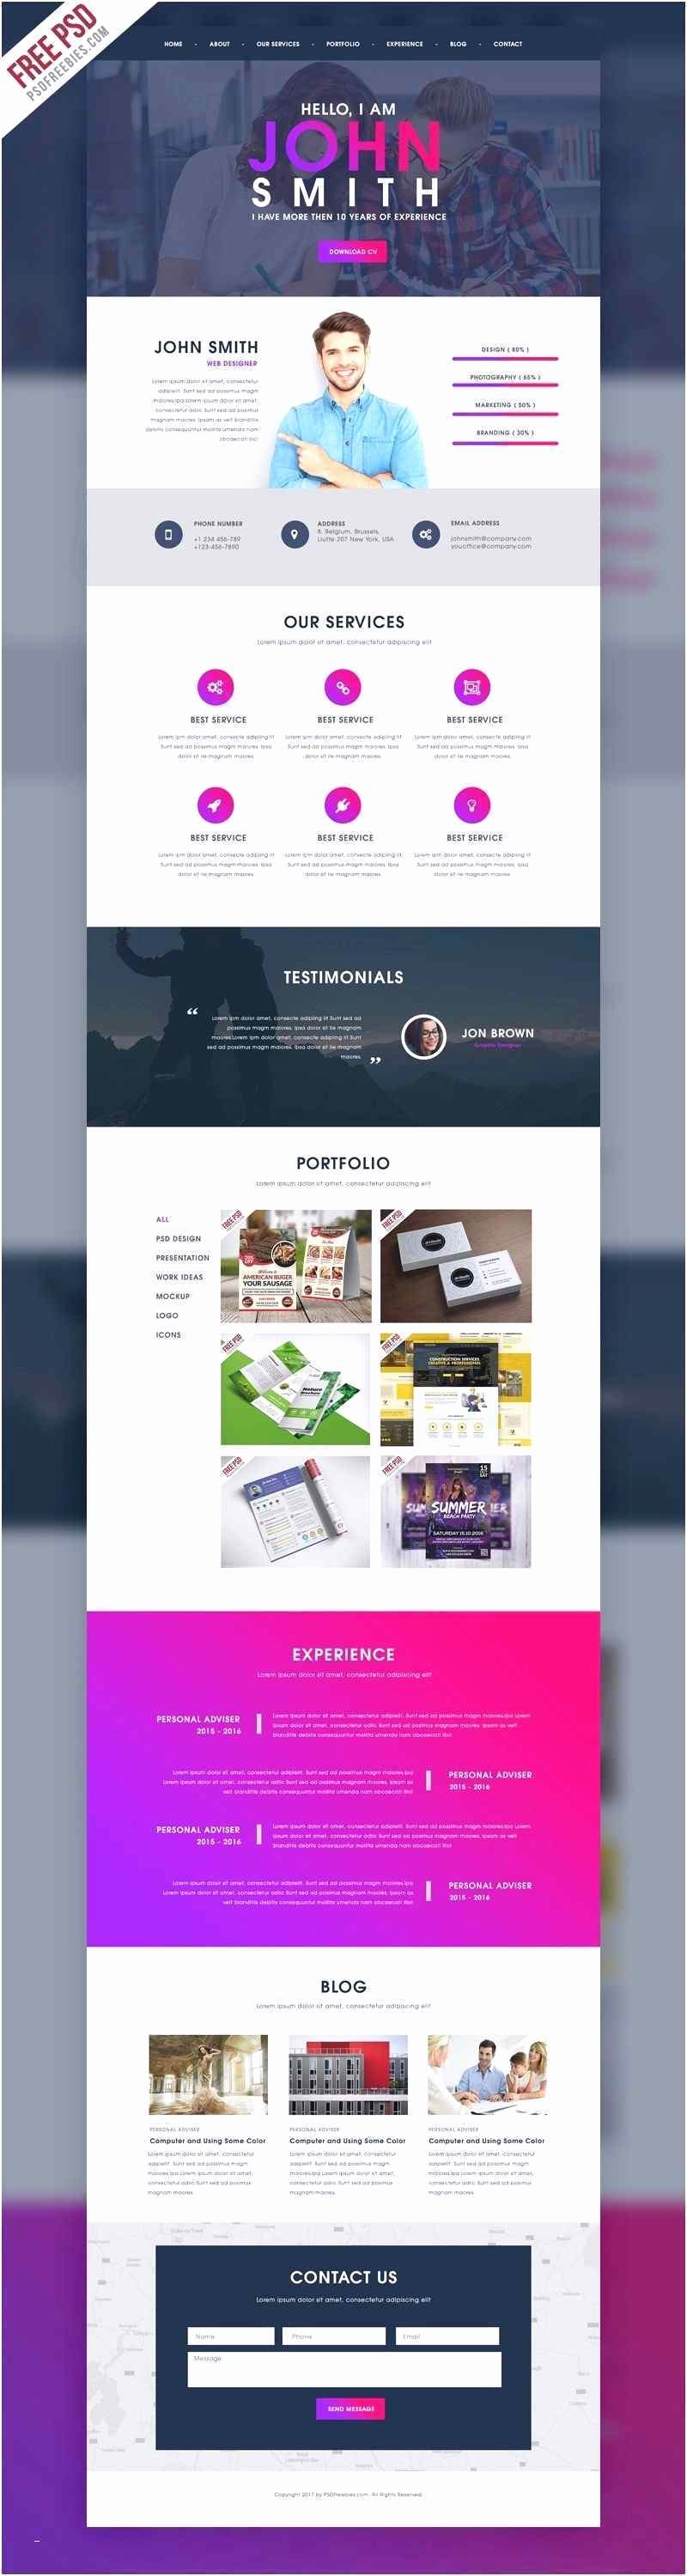 Portfolio Kindergarten Vorlagen Kostenlos Genial All Resume format Free Download Lovely Resumes Templates for Word